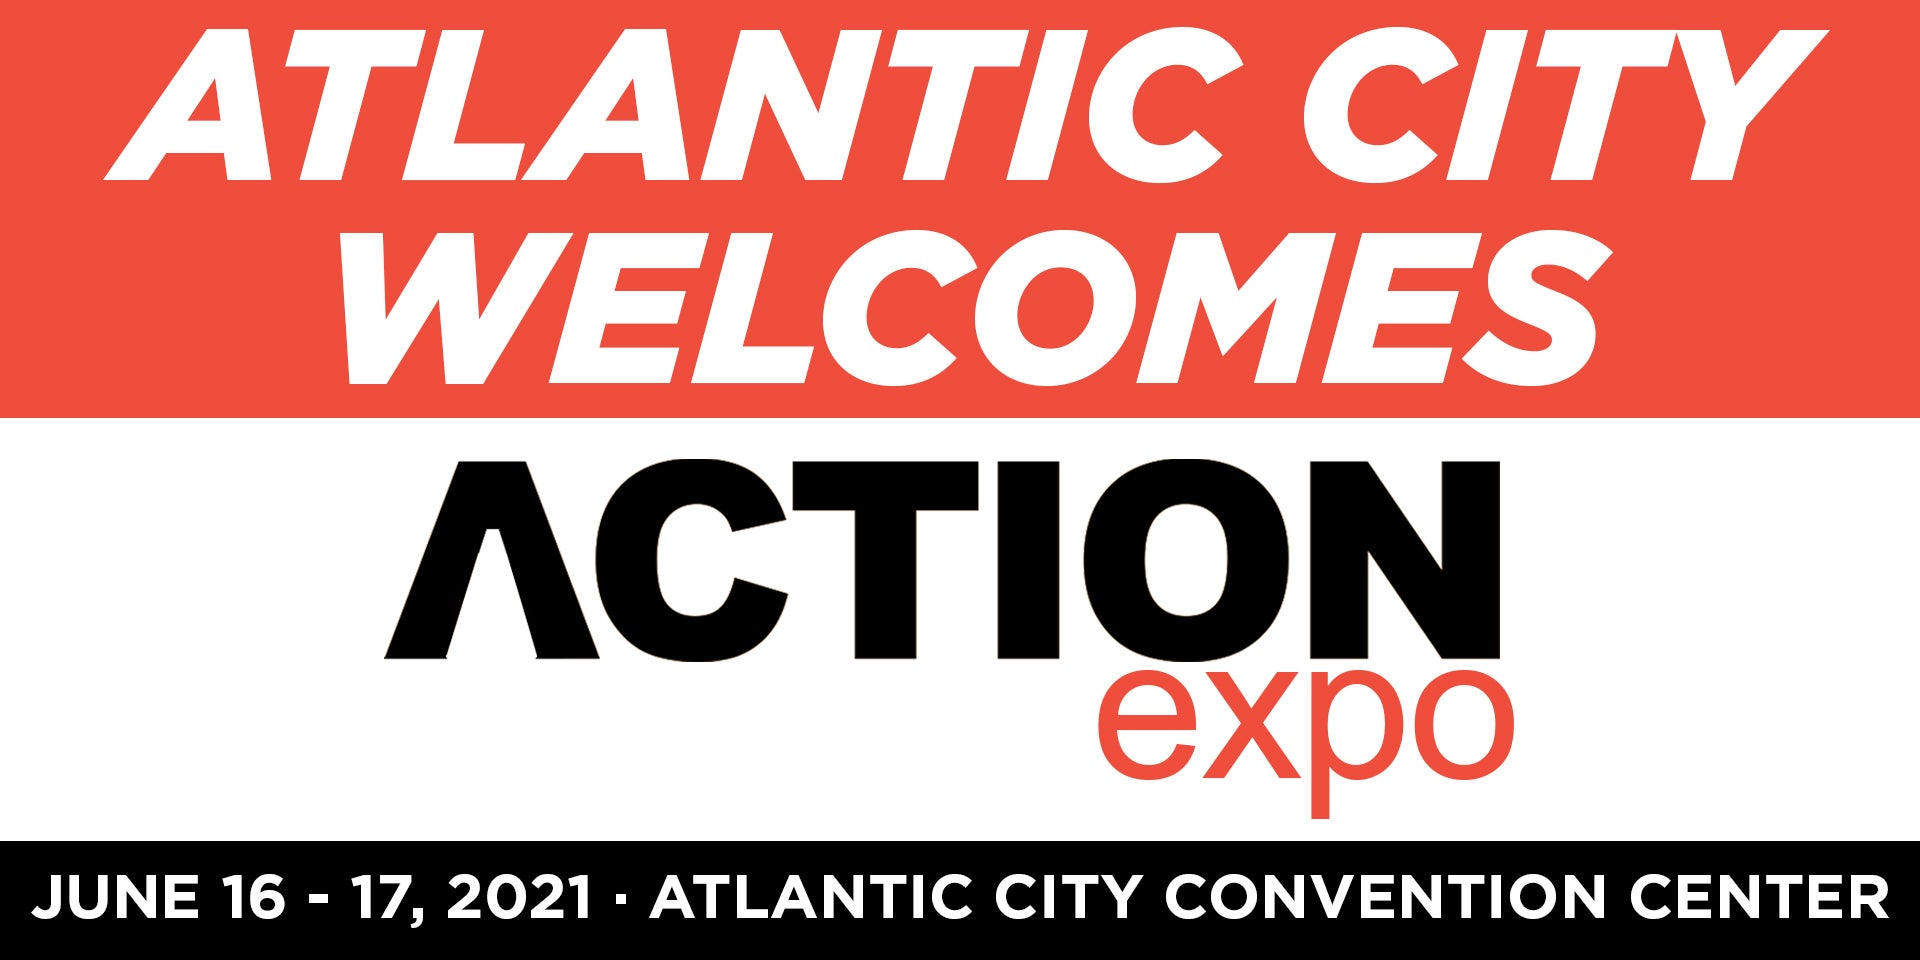 Action Expo